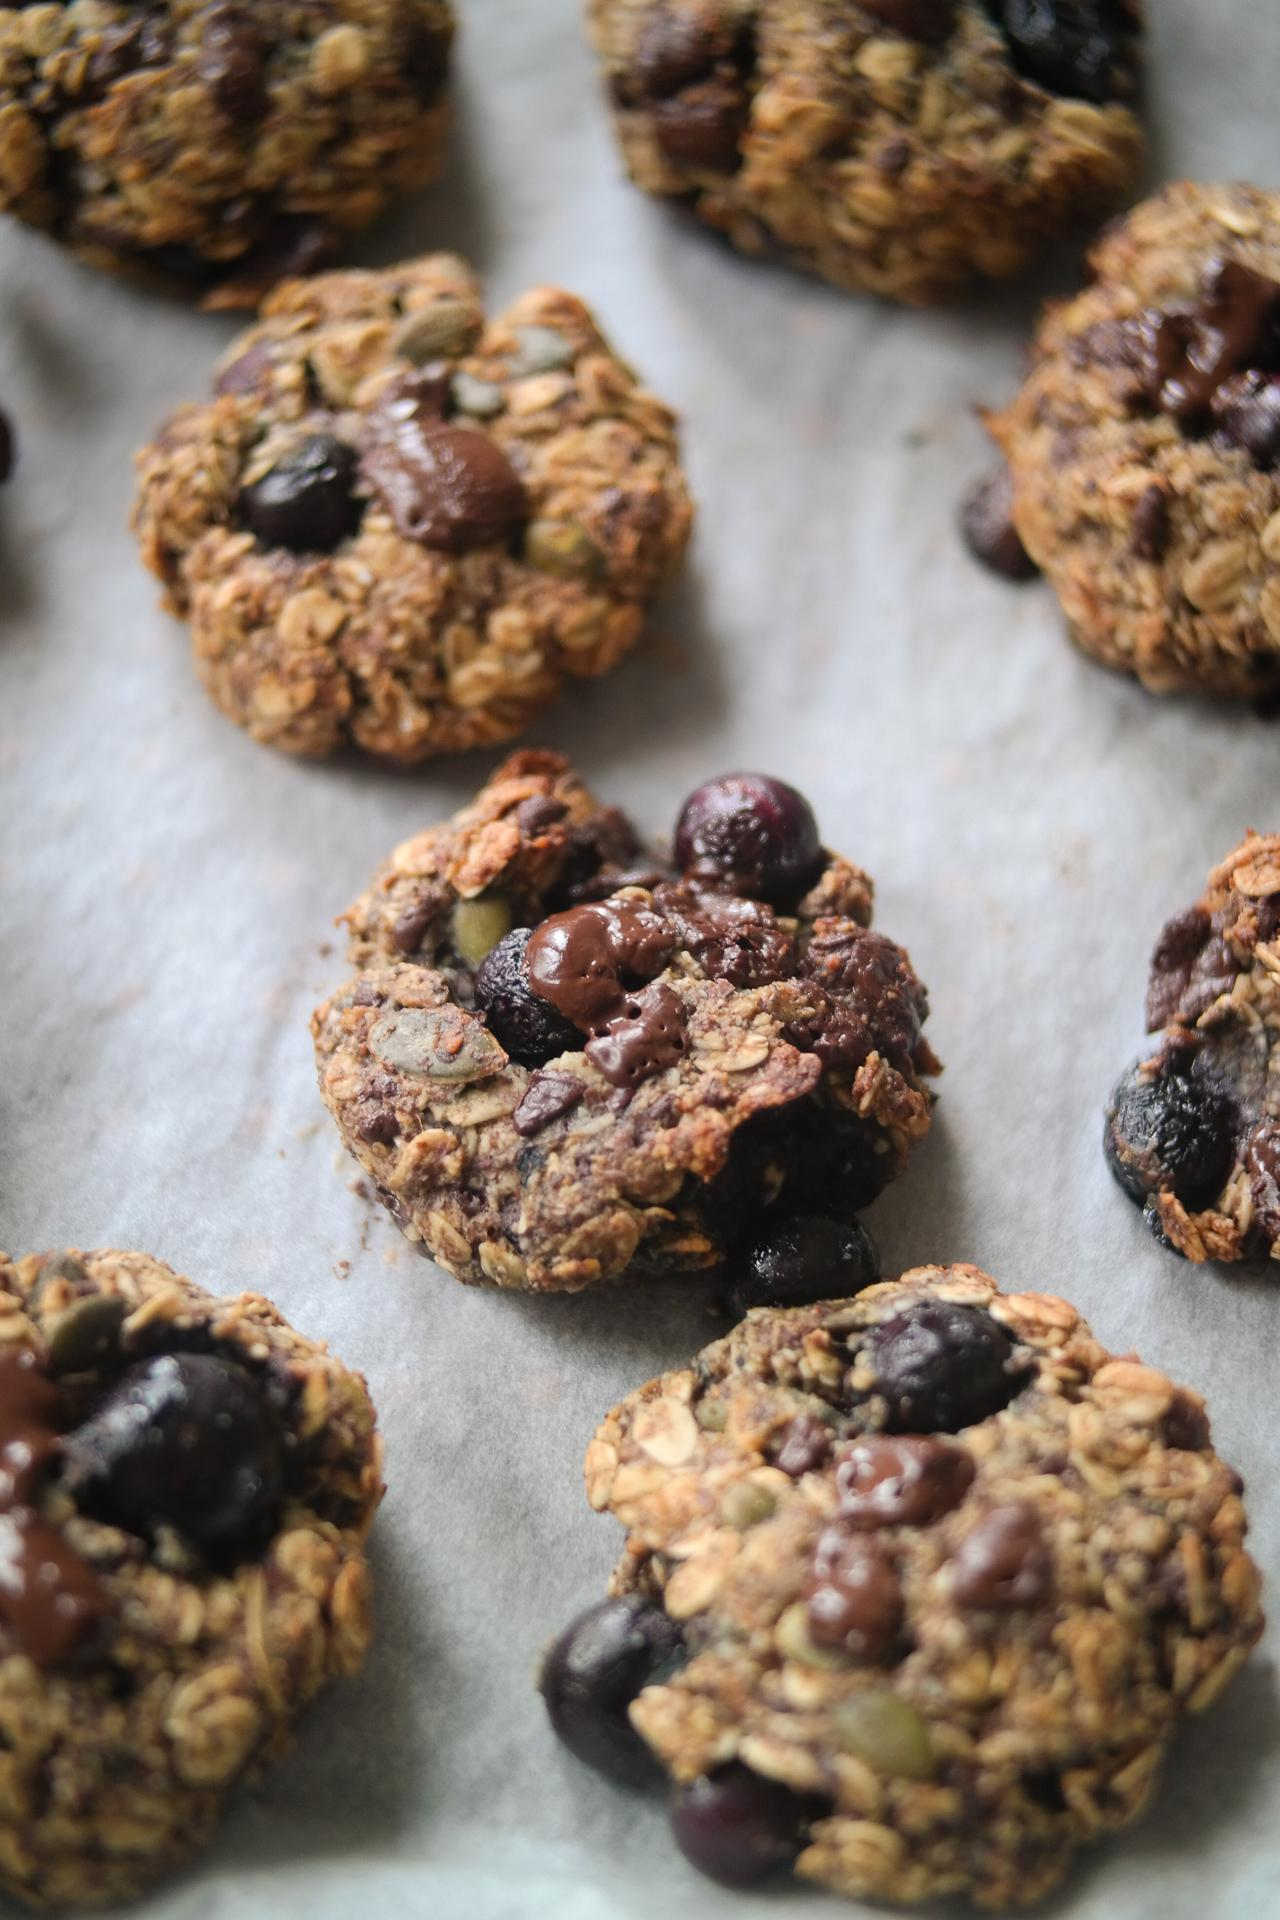 Main image of One-Bowl Blueberry Almond Breakfast Cookies